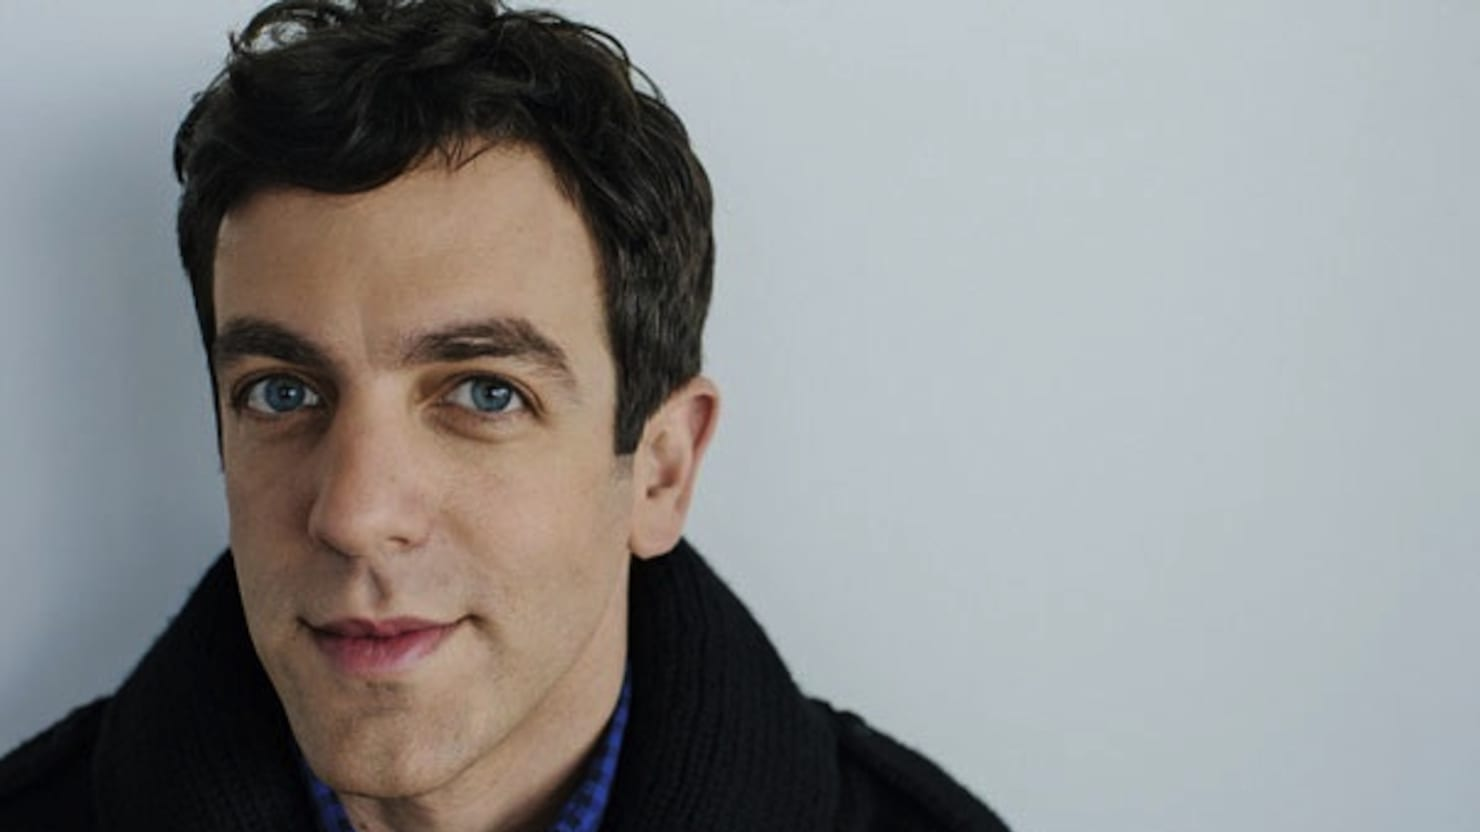 The Book of B.J. Novak: An Absurdist, Scathingly Funny Literary Debut